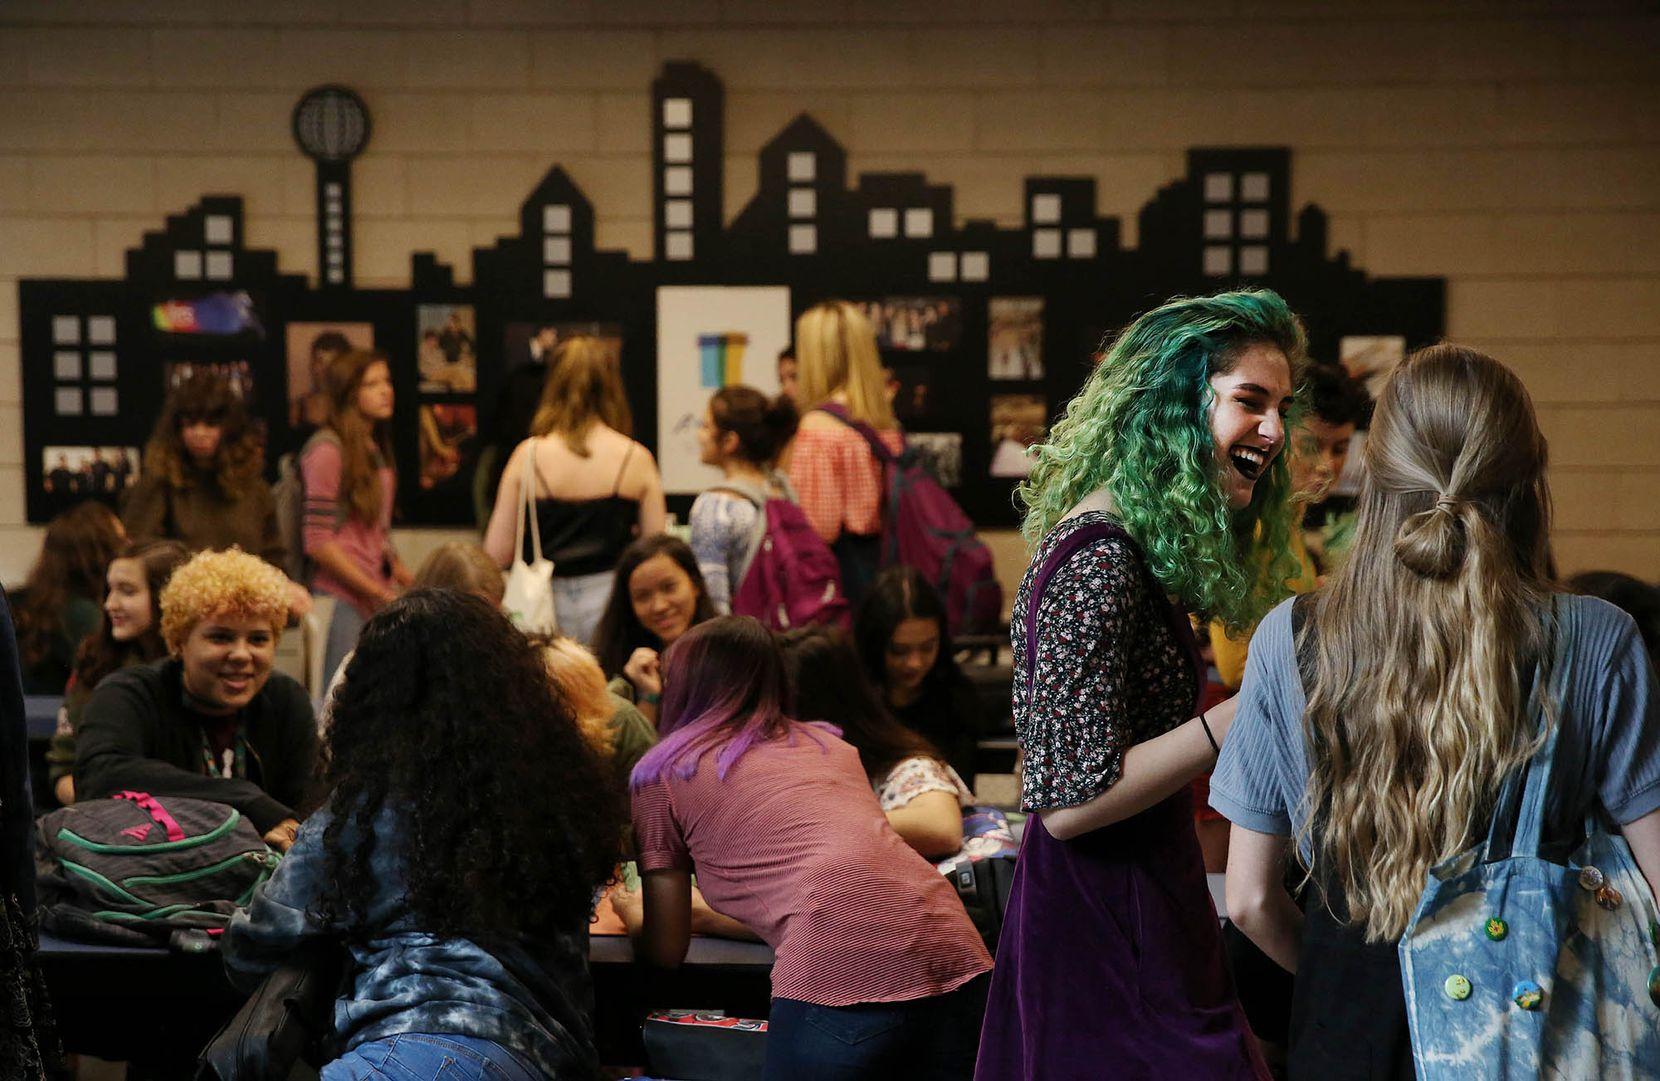 Isabella Bruner, a junior, speaks to her peer during the first day of school in the 2017 Dallas Independent School District school year at Booker T. Washington High School.